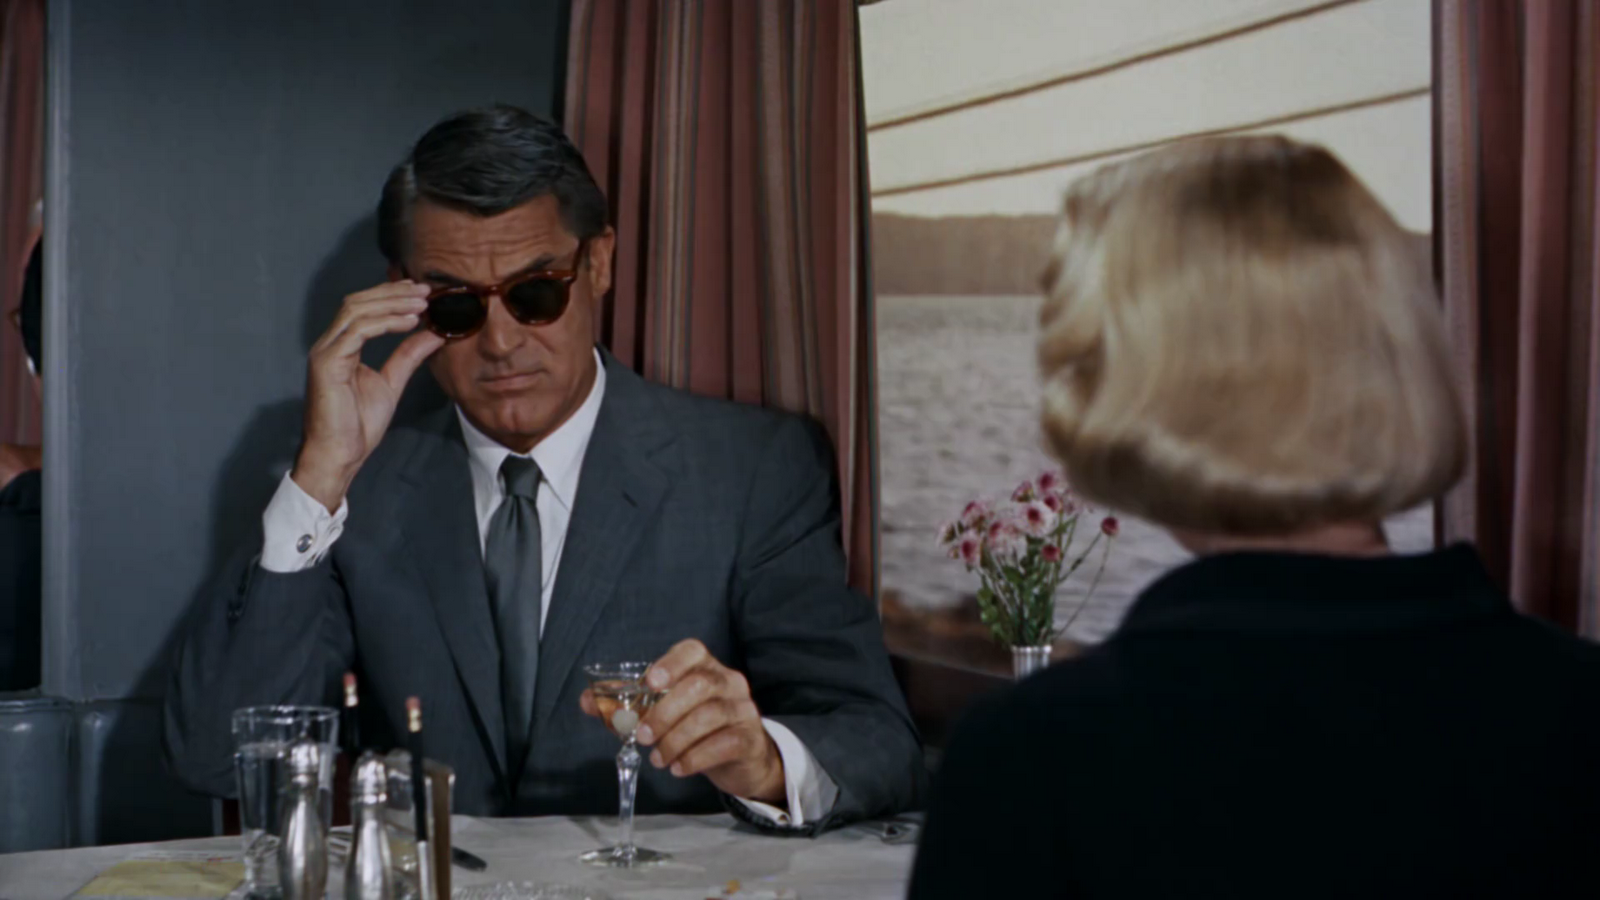 North By Northwest Backgrounds, Compatible - PC, Mobile, Gadgets| 1600x900 px